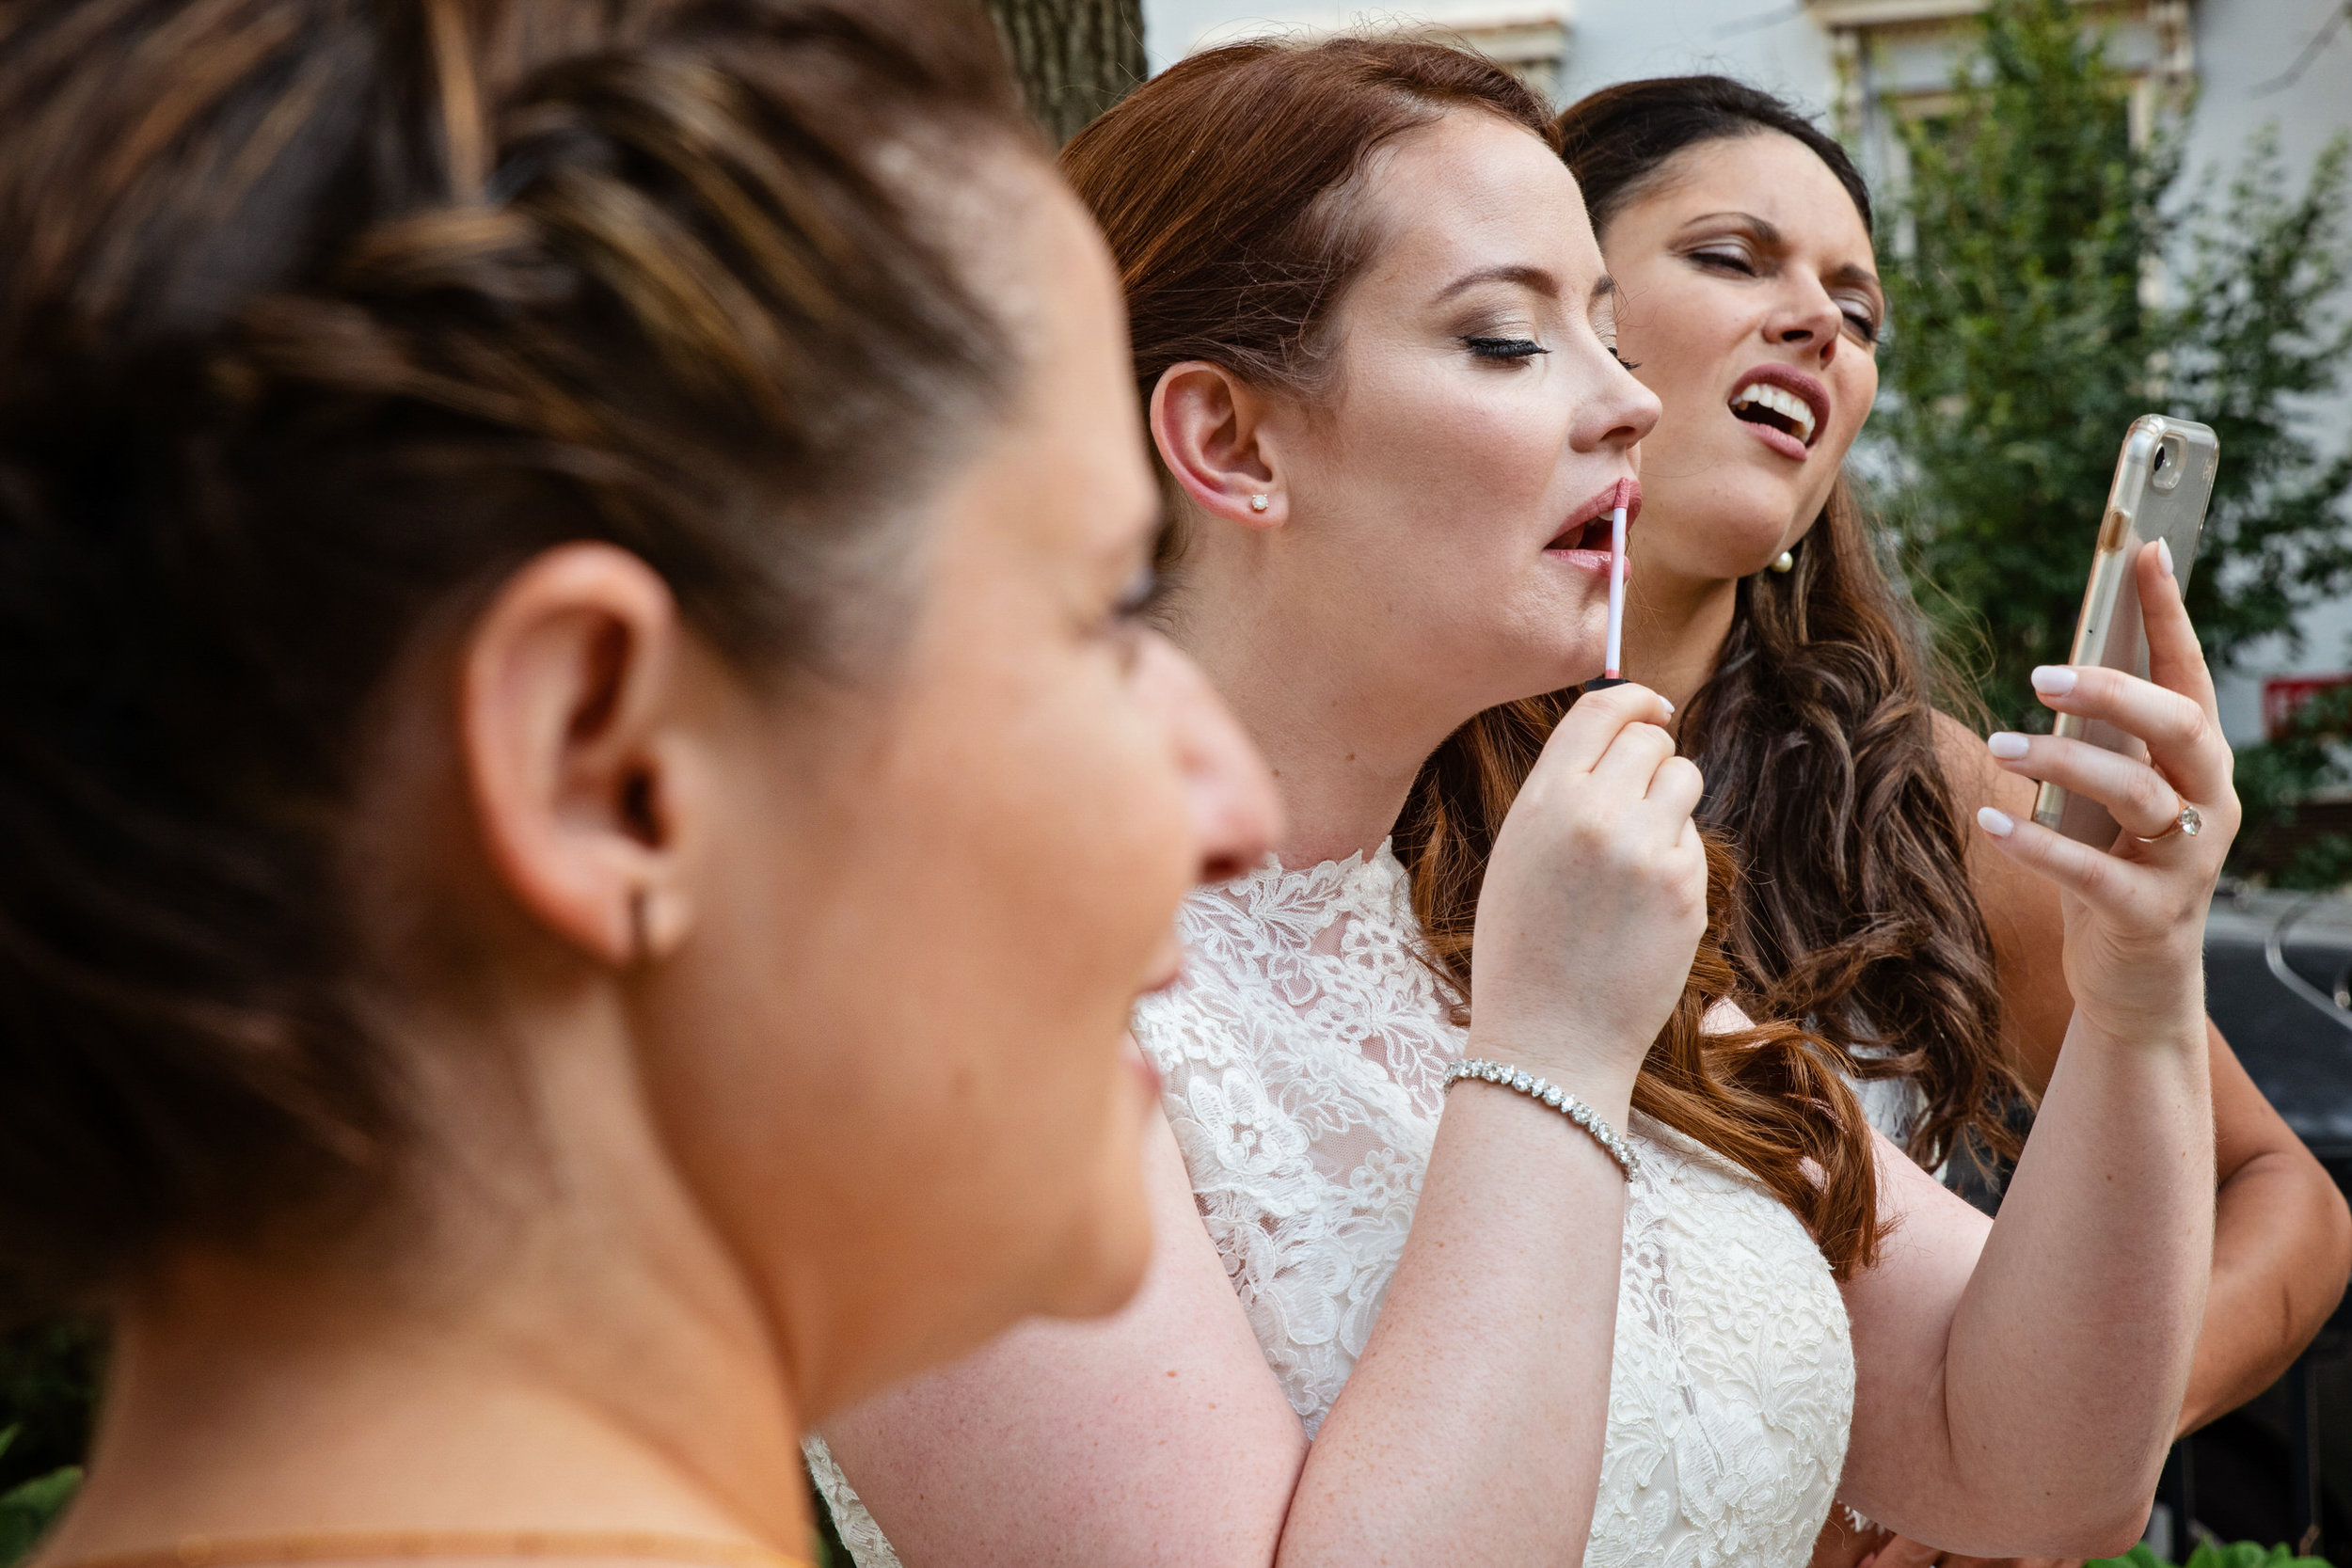 PeabodyLibraryWedding-Paige&Colin-WeddingParty-5.jpg